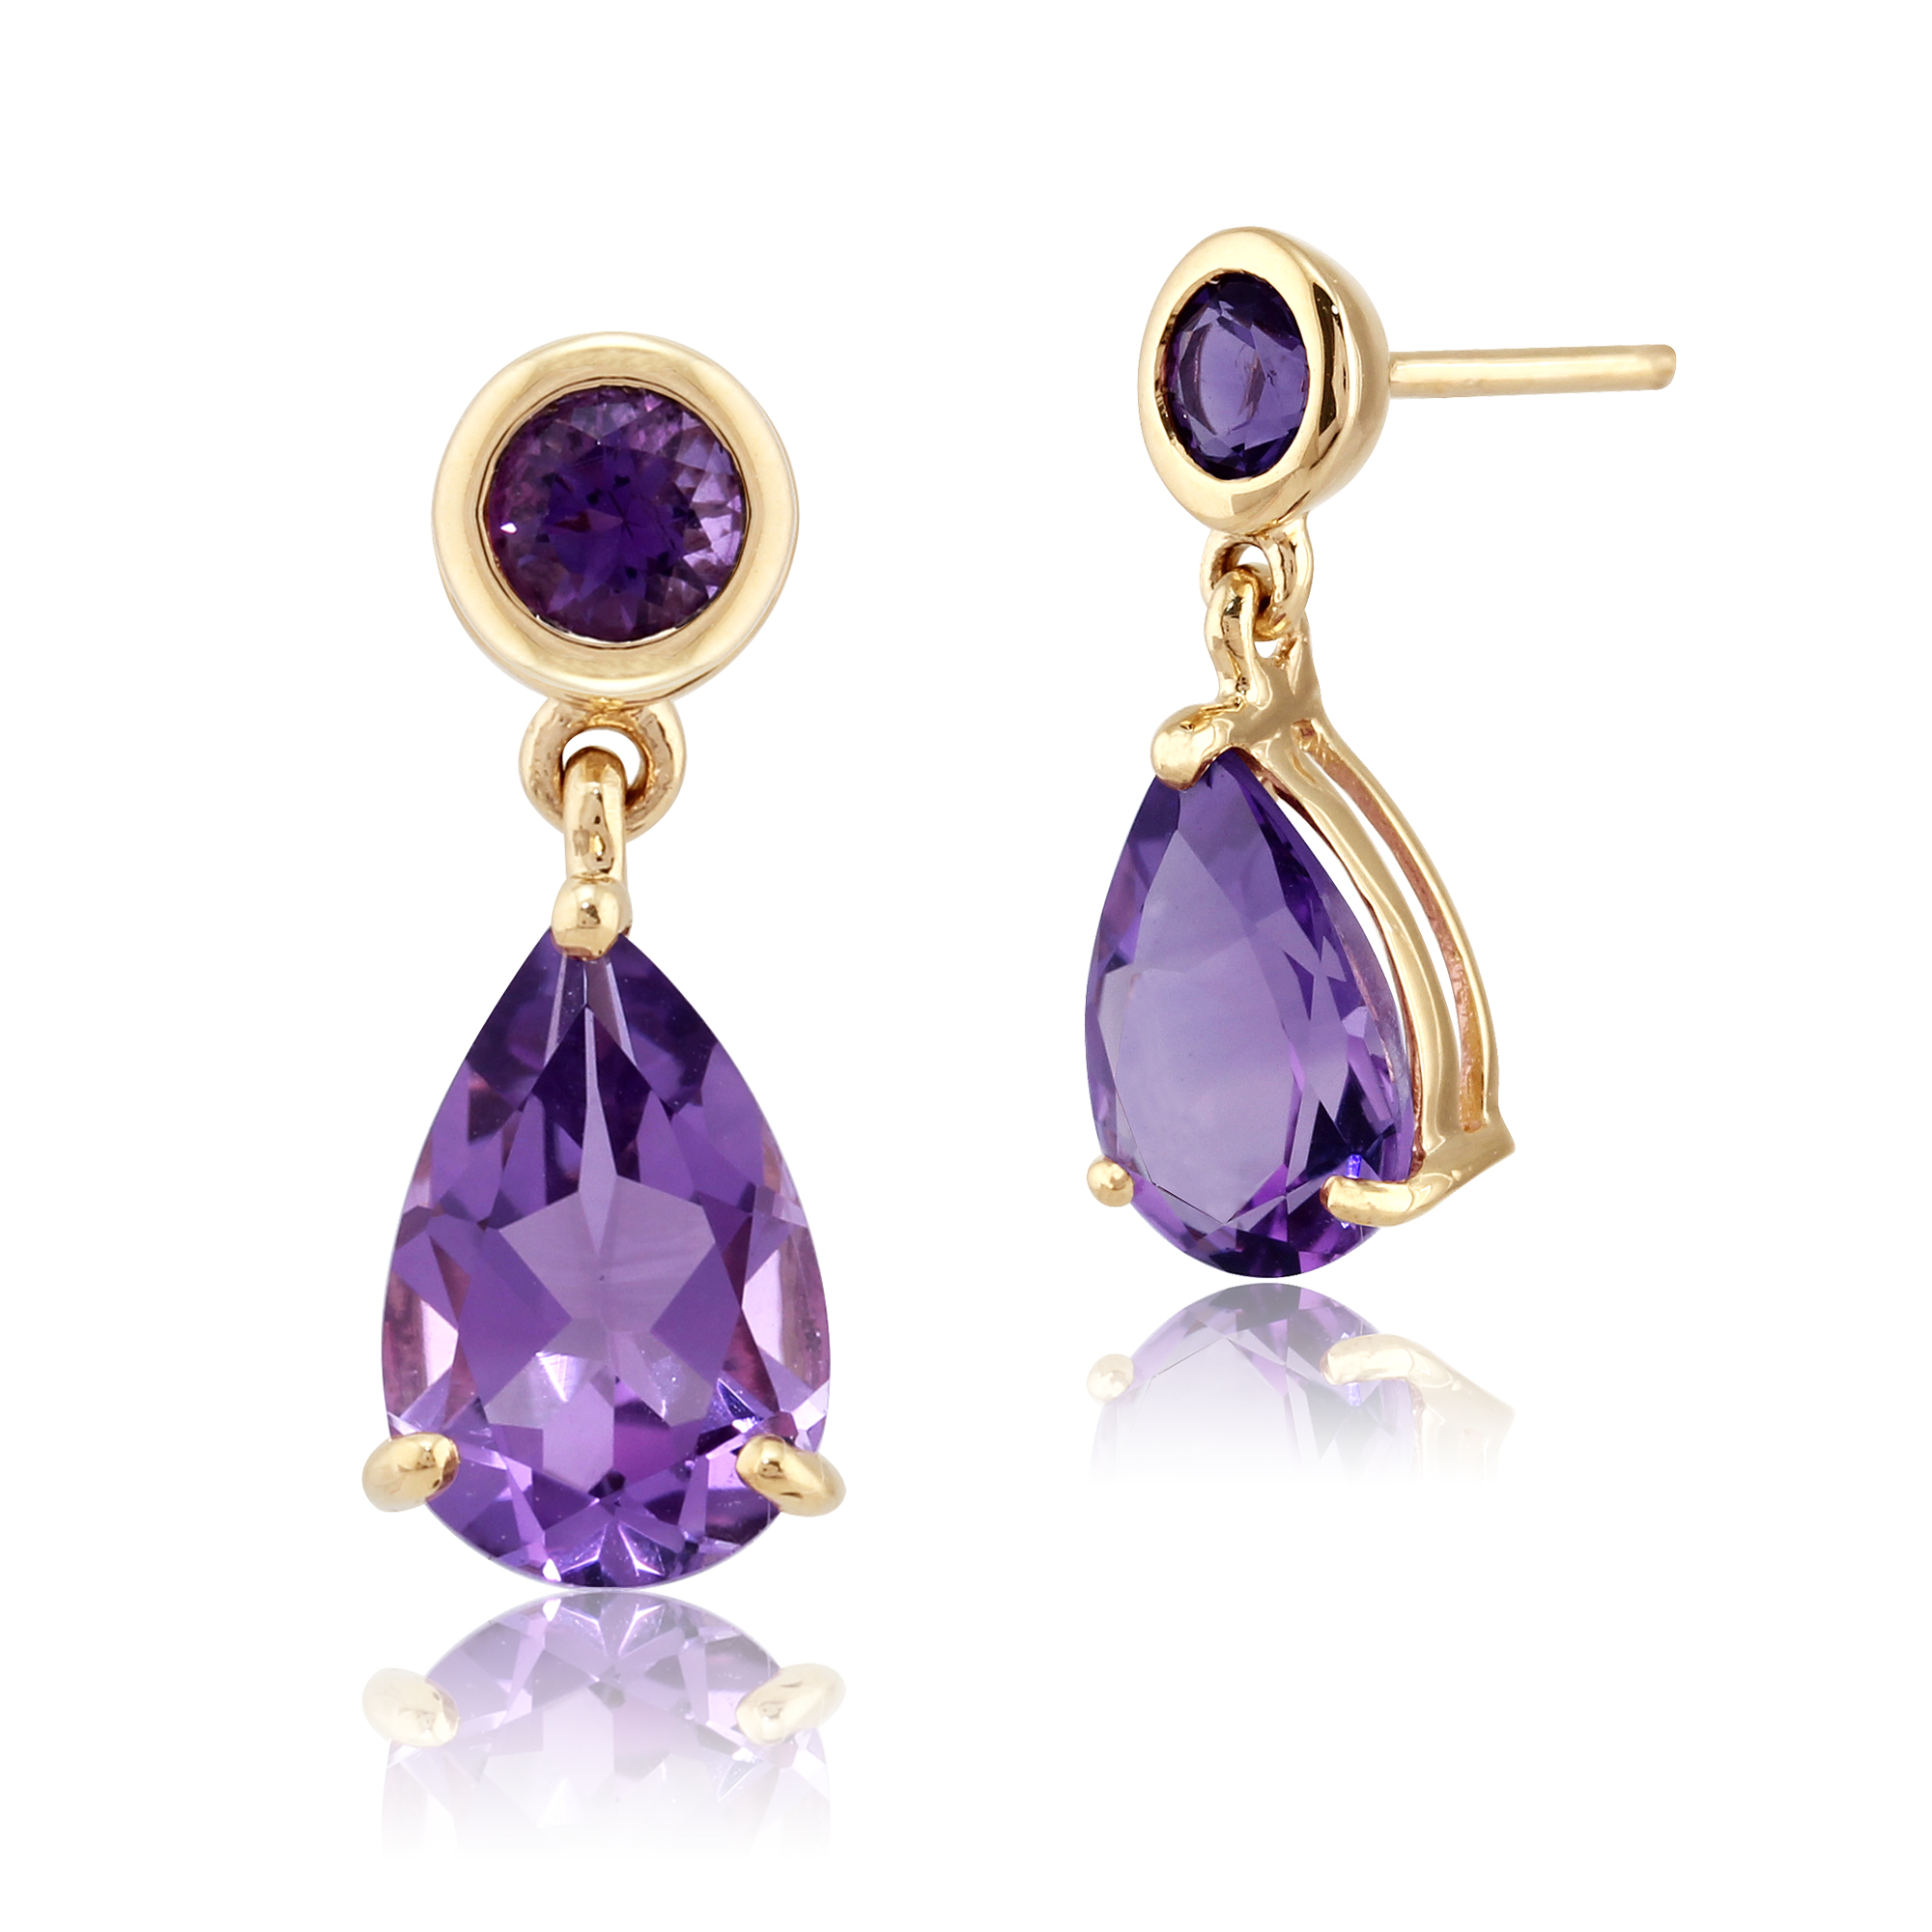 gemondo 9ct yellow gold amethyst two stone drop earrings. Black Bedroom Furniture Sets. Home Design Ideas